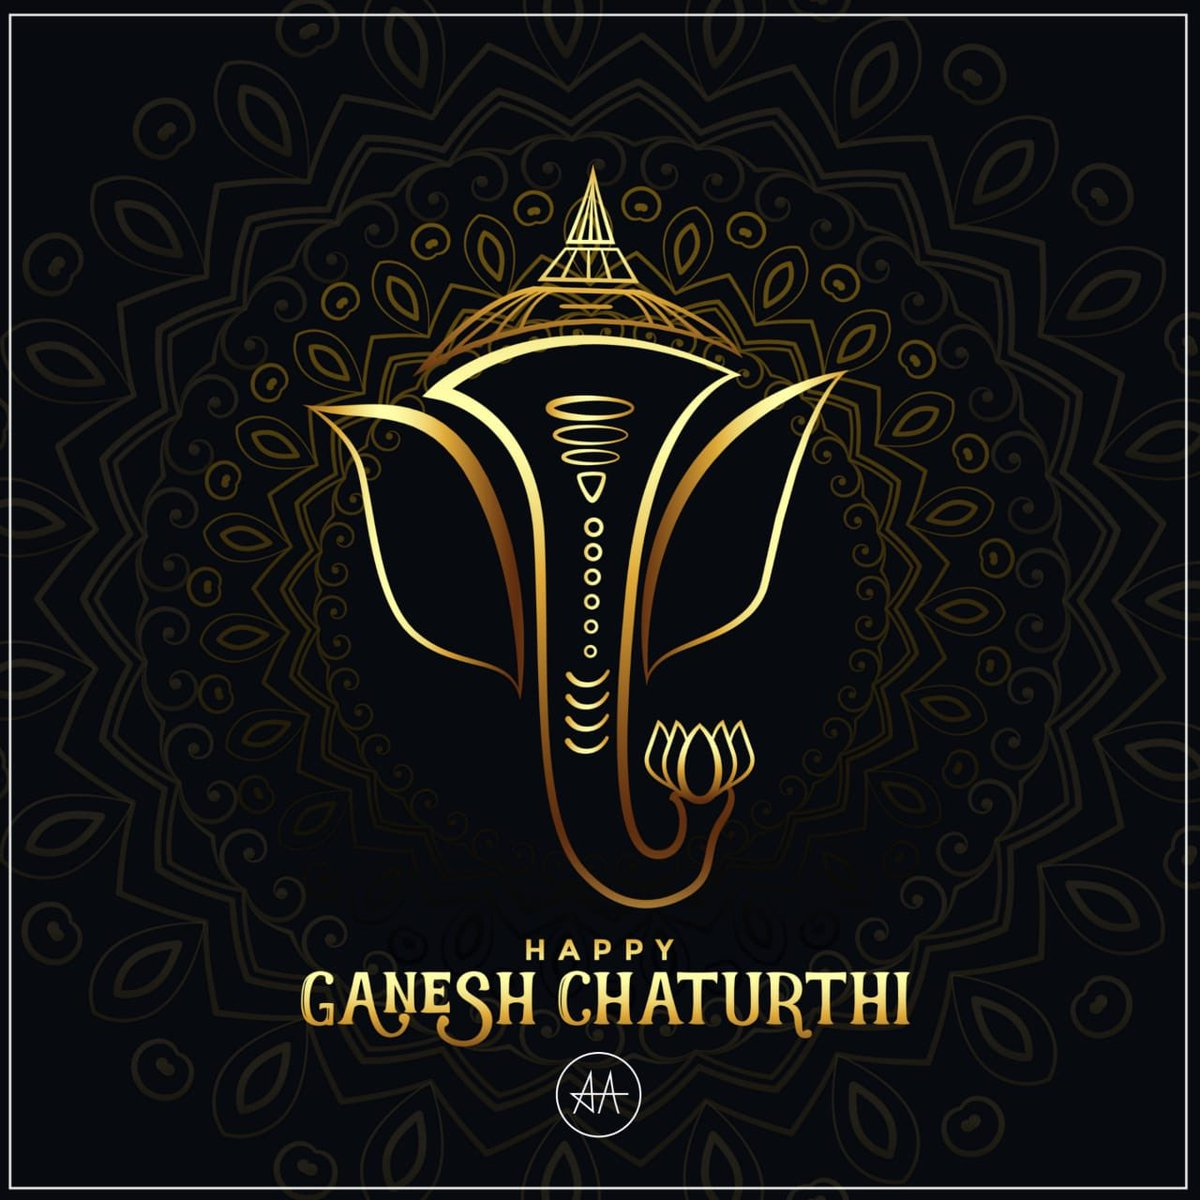 Happy Vinayaka Chavithi to each and every one of you and your family . https://t.co/F2tnhkywfm